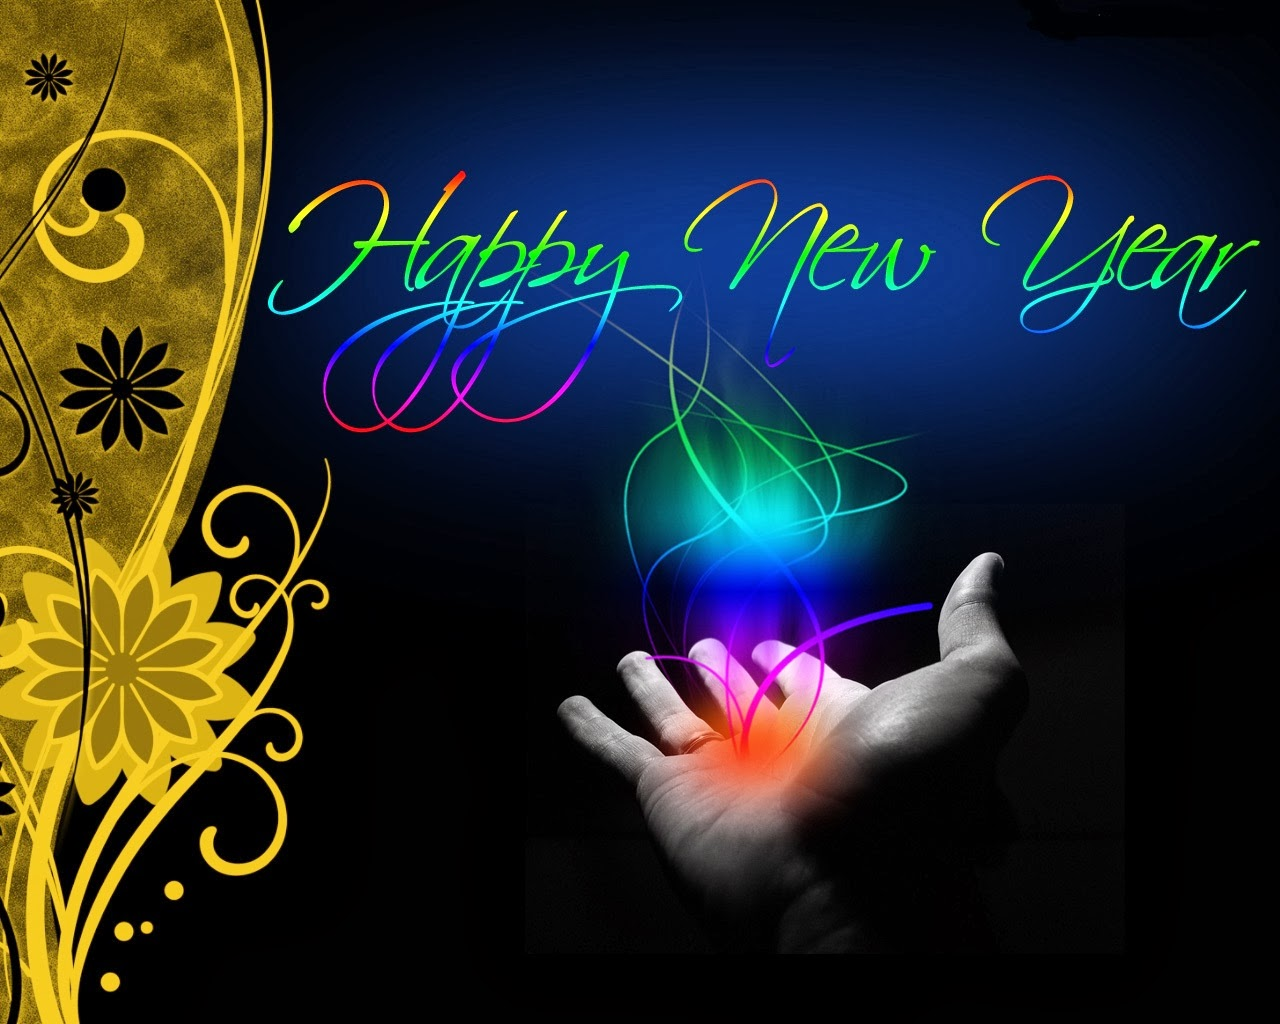 collection of hd wallpaper life: happy new year wallpapers